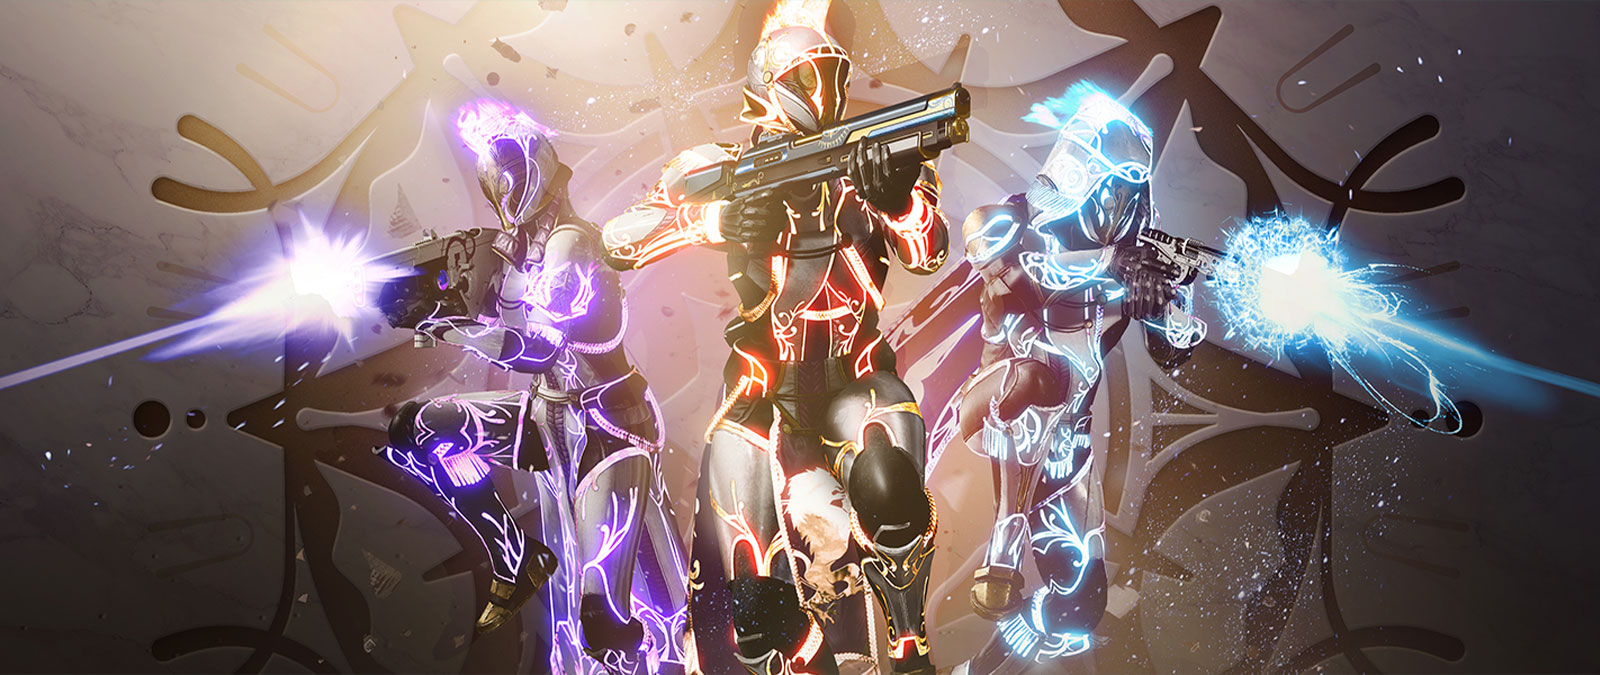 Three Guardians glowing with different colors of energy are poised for firearm combat.